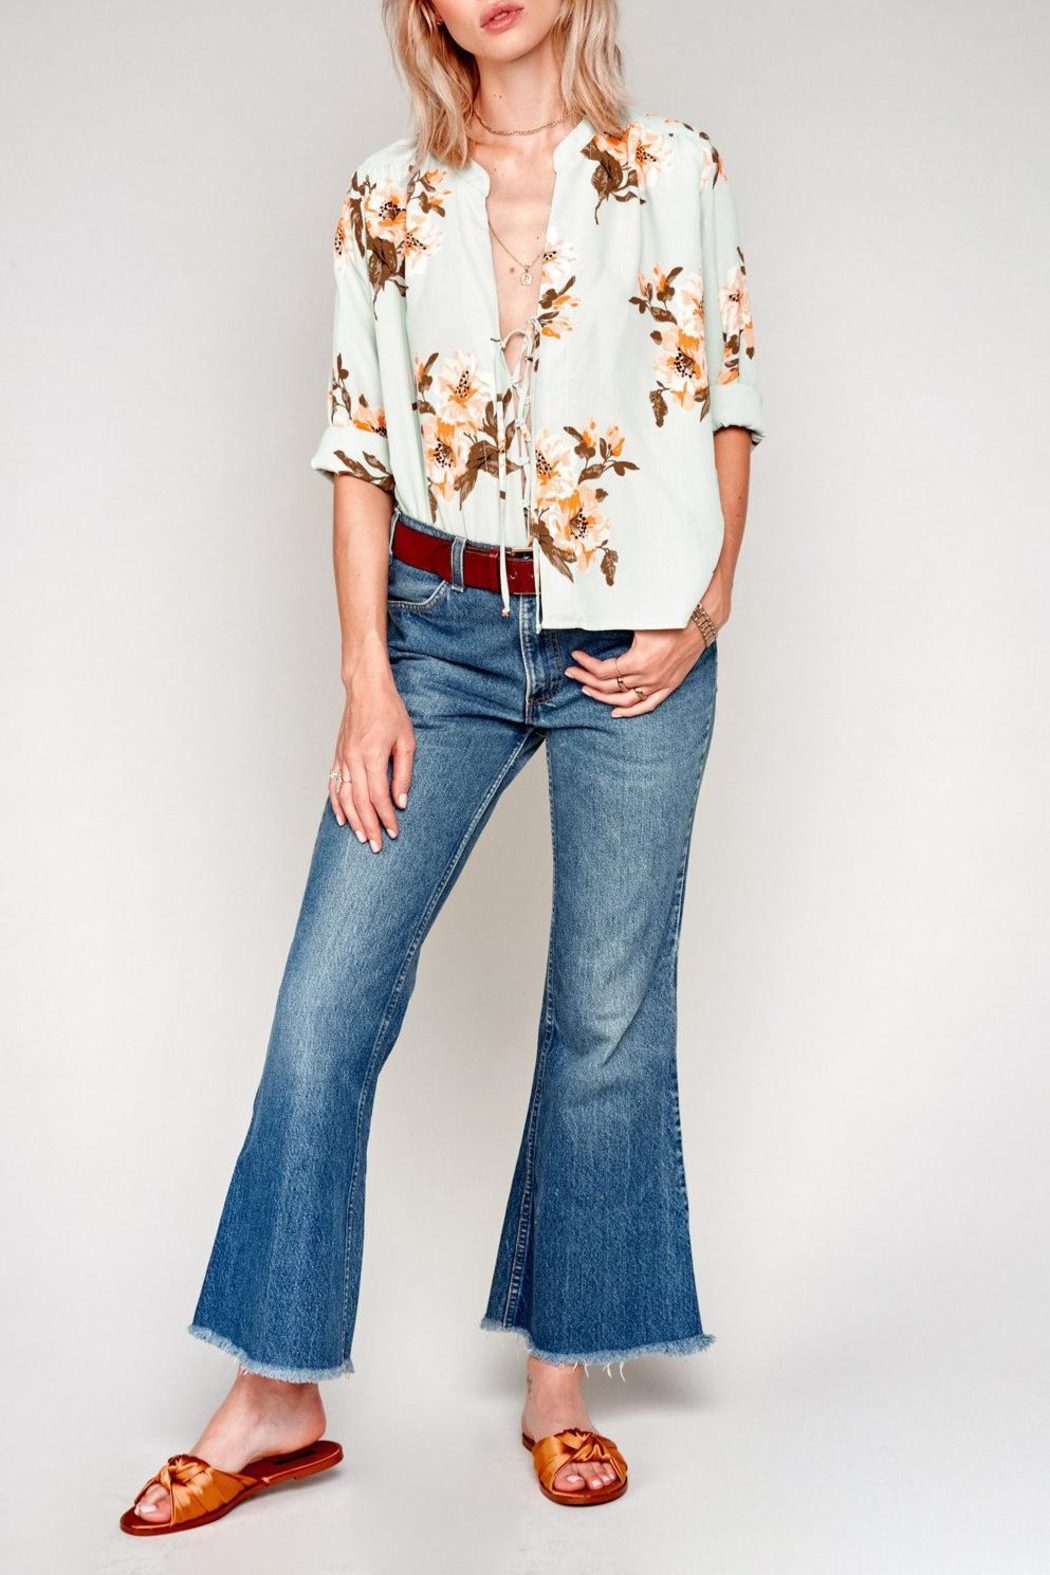 Flynn Skye Floral Chiffon Blouse - Front Full Image